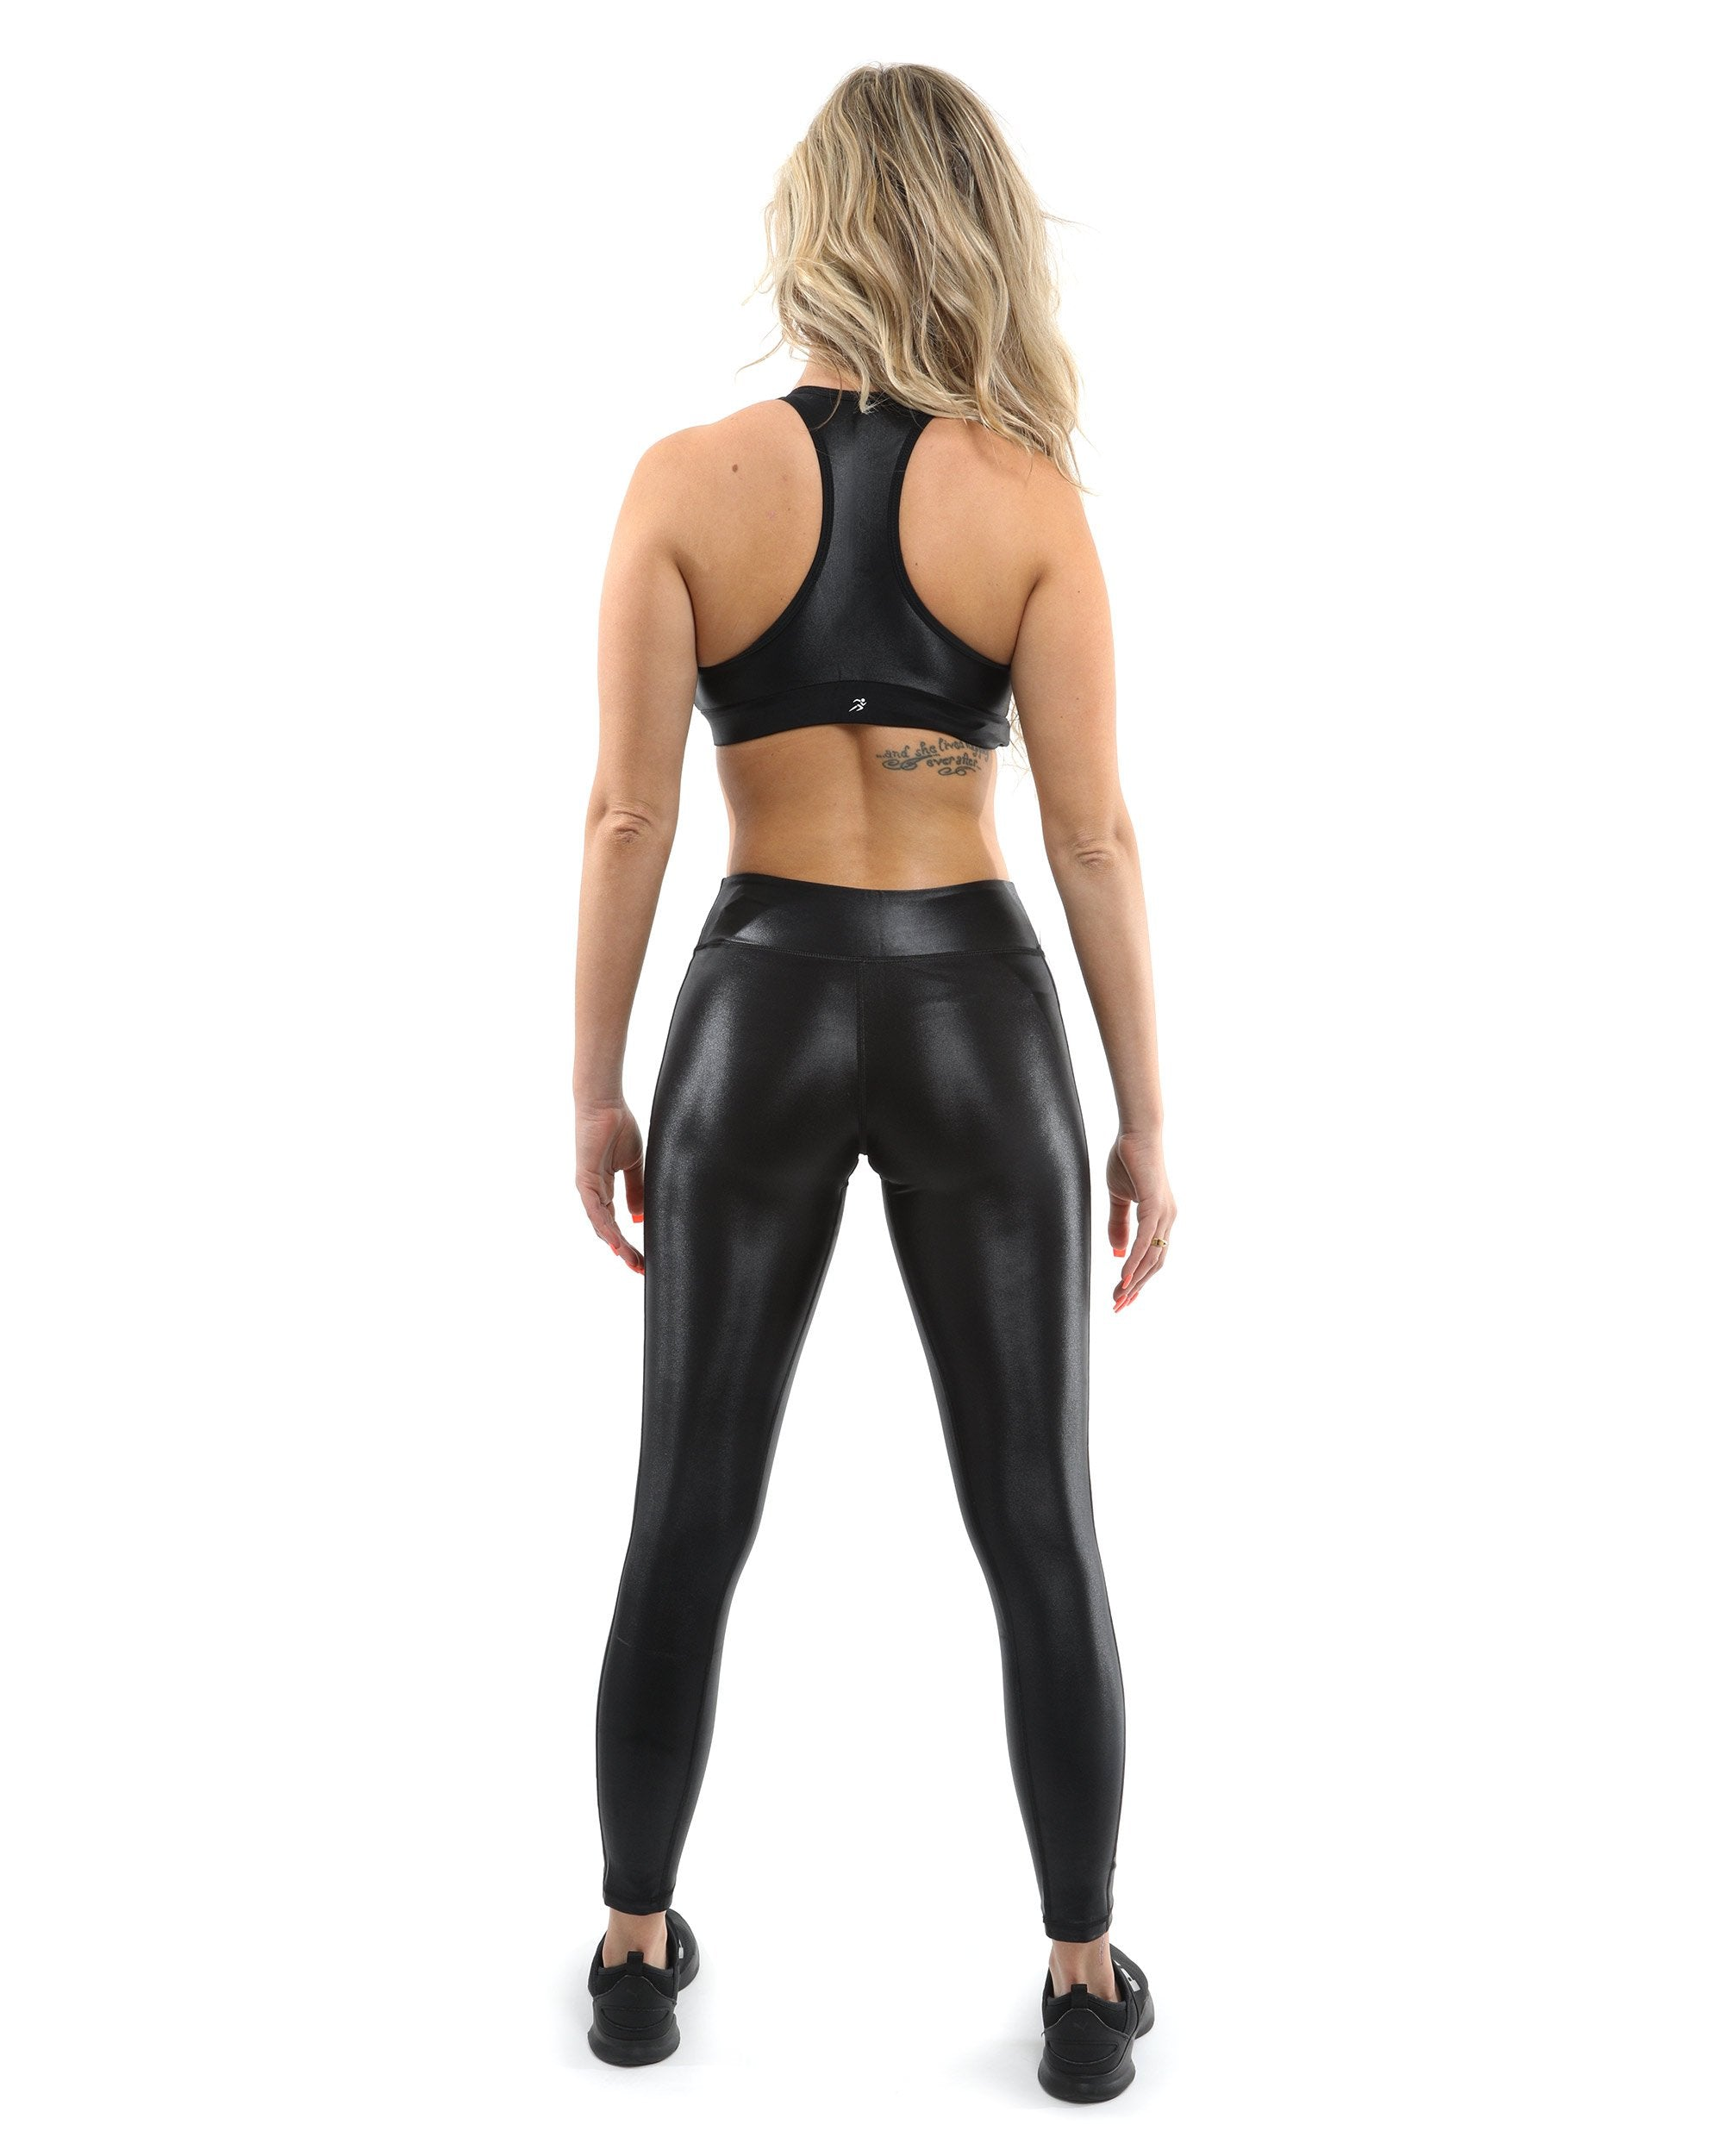 SALE! 50% OFF! Cortina Activewear Set - Leggings & Sports Bra - Black [MADE IN ITALY] - Size Small